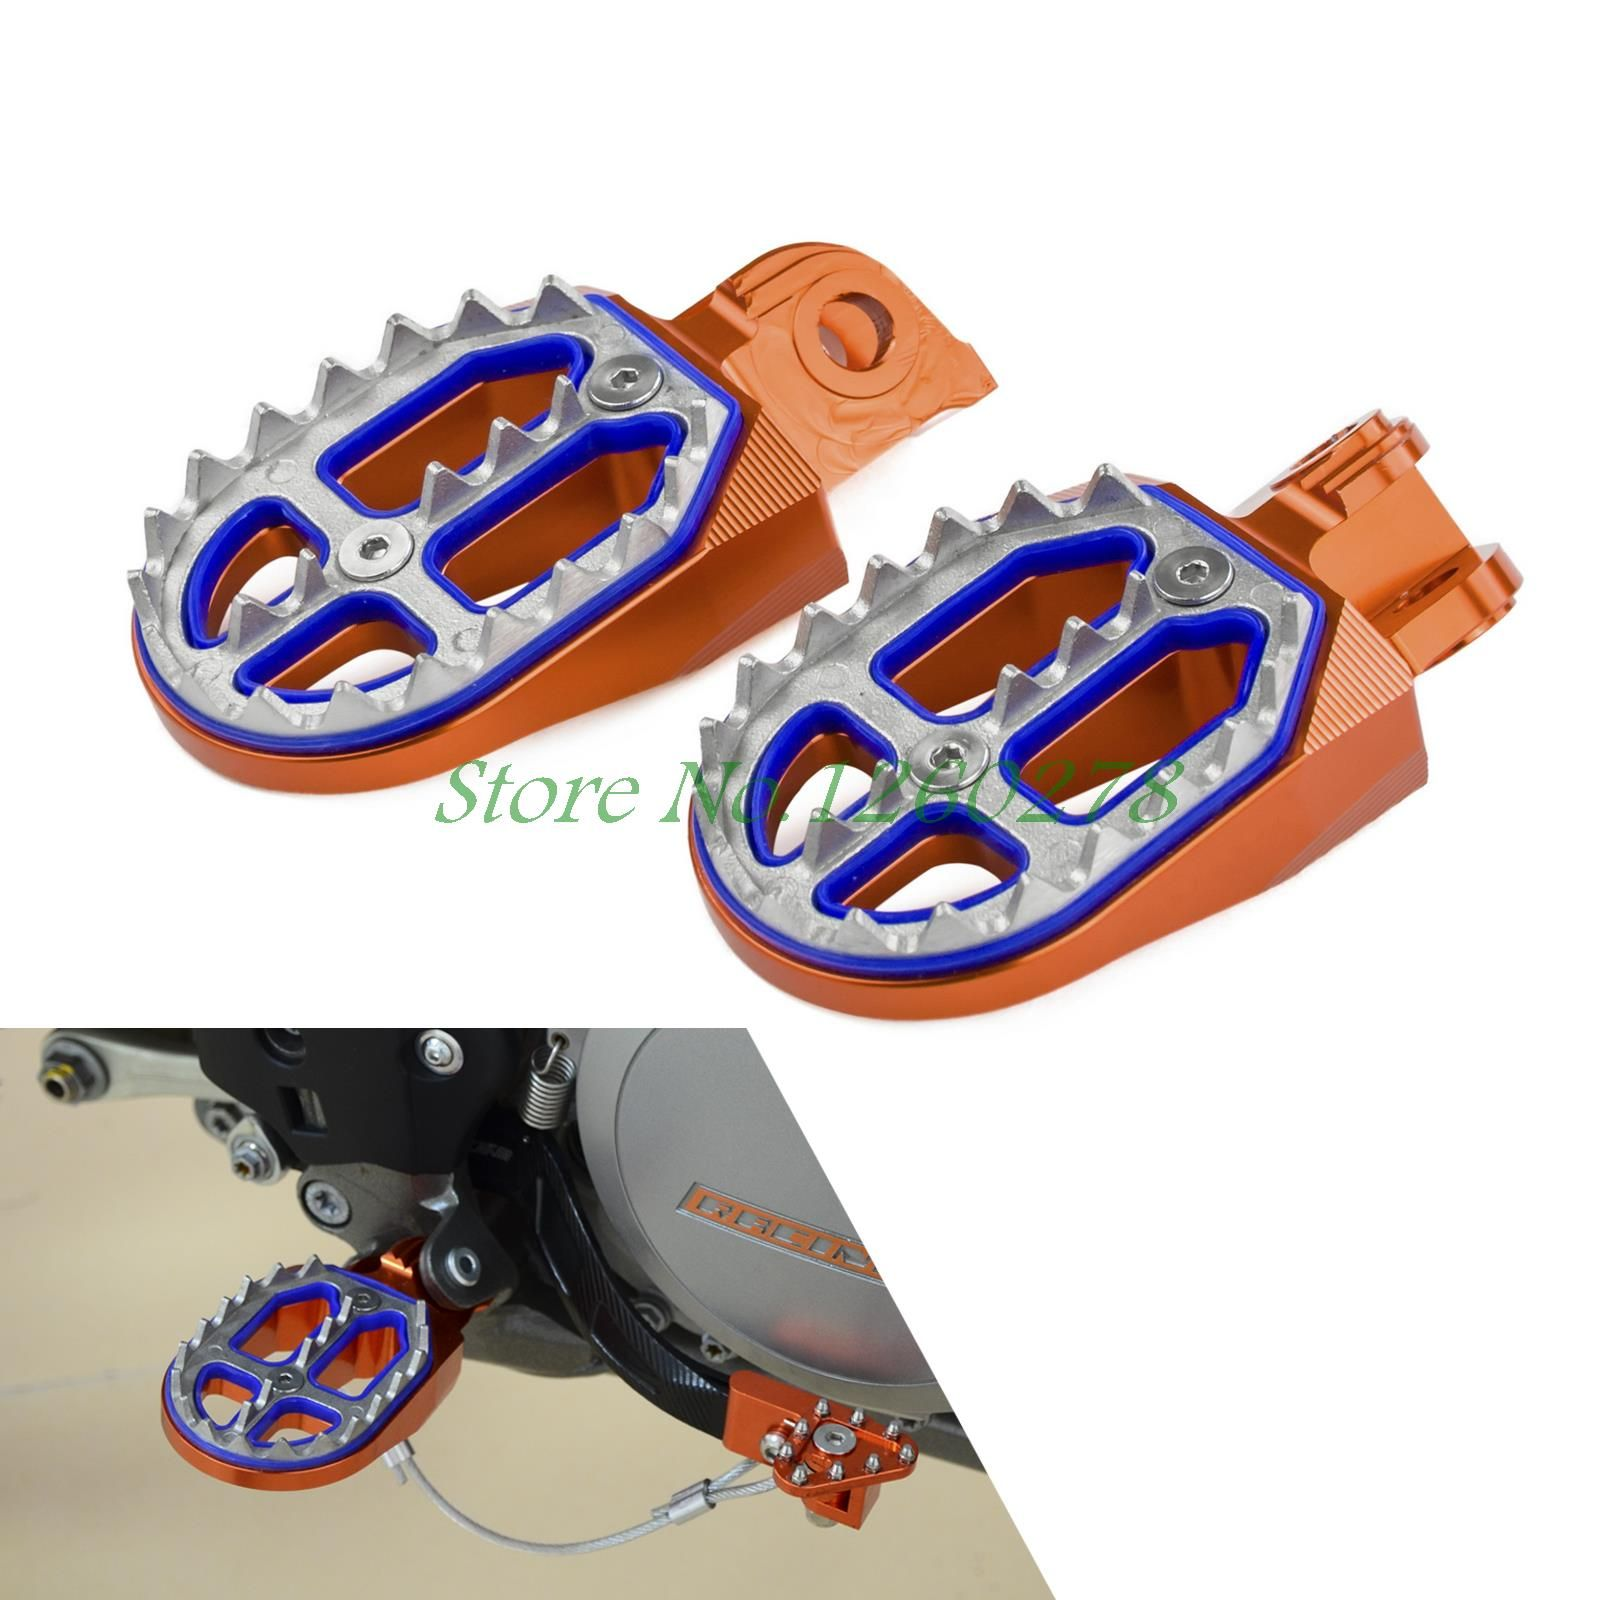 Racing Foot Pegs Rests Pedals For KTM EXC EXCF XC XCF XCW SX SXF 50 125 250 350 450 525 530 690 950 990 1190 1290 SMC ENDURO